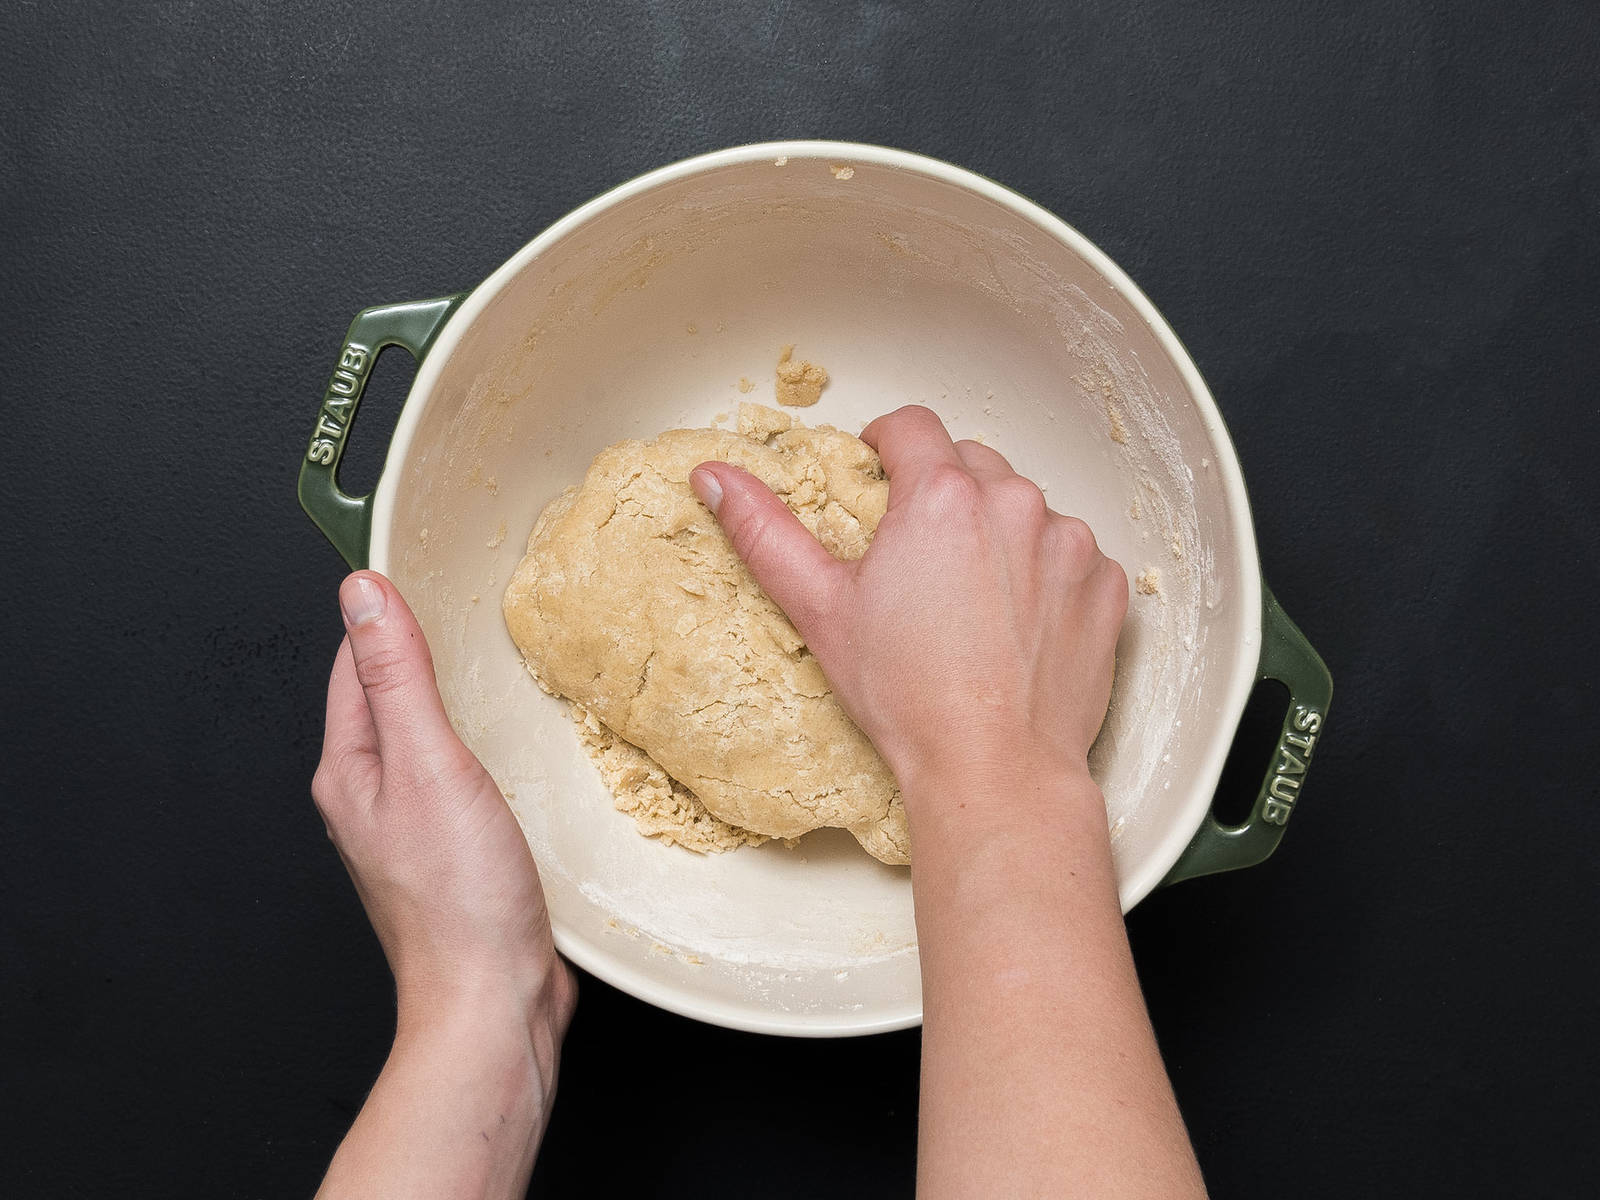 In a large bowl, beat the butter with sugar, seeds from vanilla, pinch of salt and cinnamon until fluffy, then stir in the egg. Add the flour and knead with your hands to a smooth dough. Cover with plastic wrap and transfer to fridge for approx. 60 min.